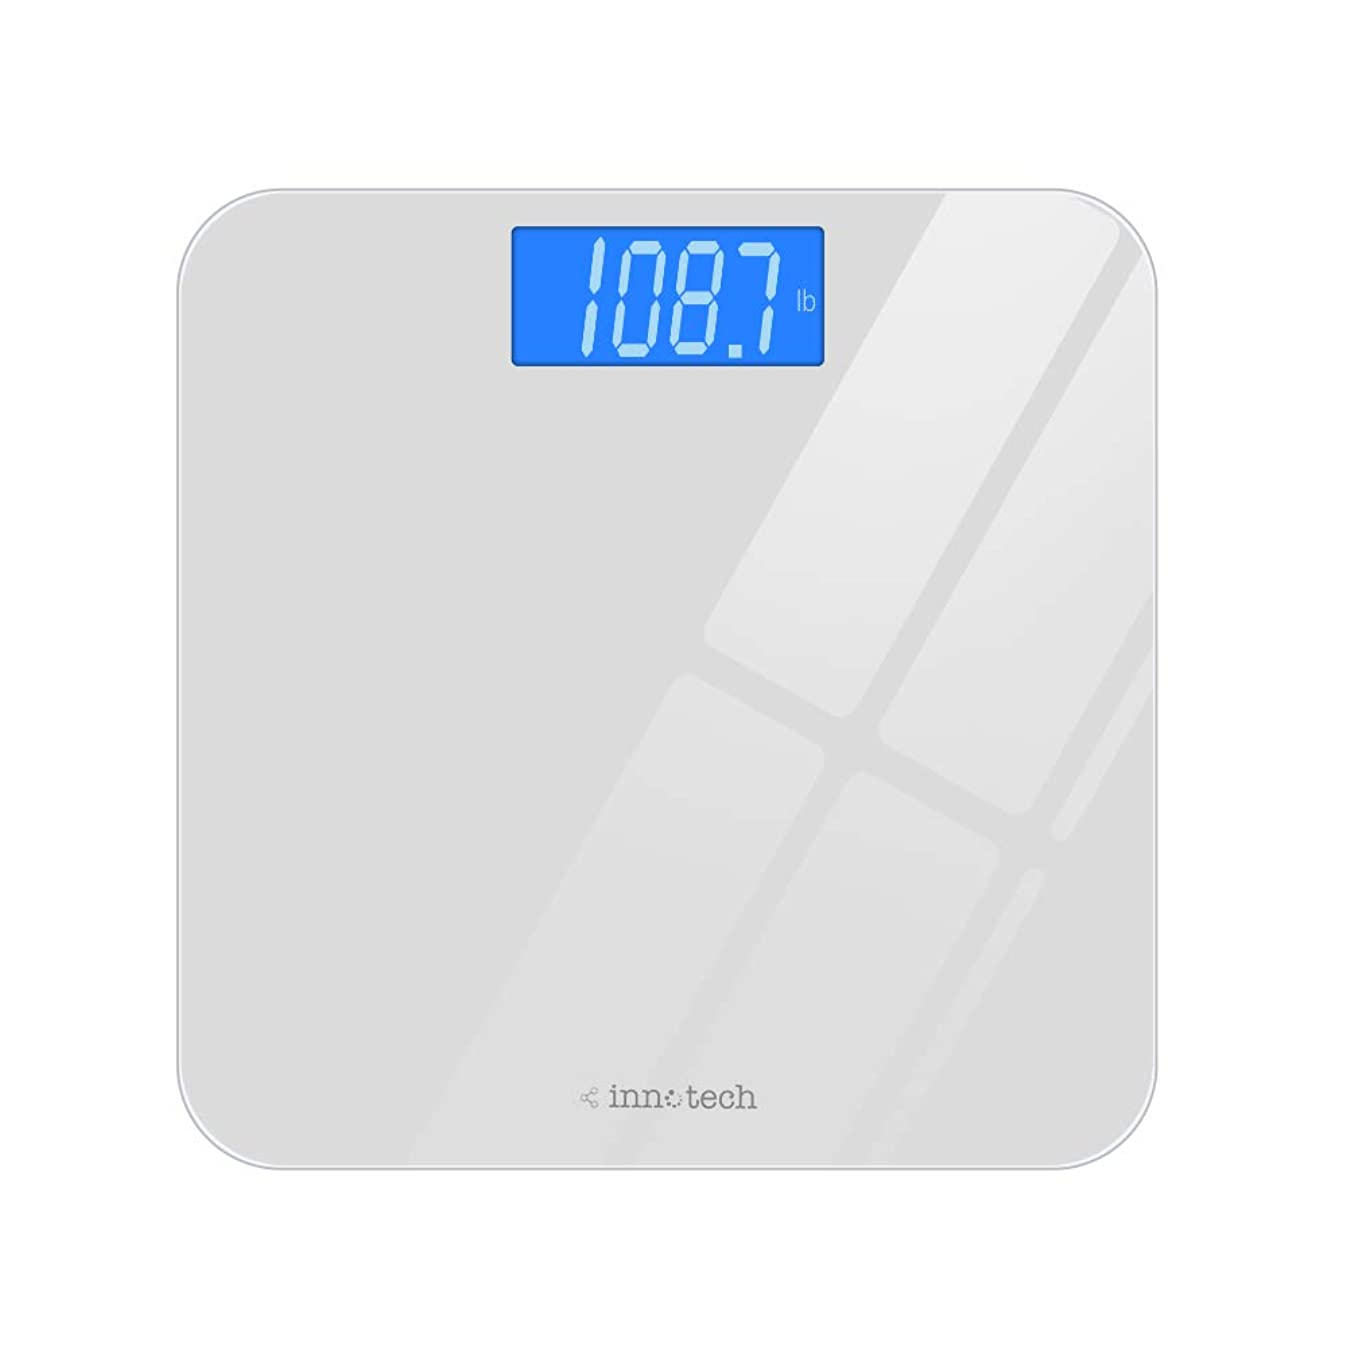 Innotech? Digital Bathroom Scale with Easy-to-Read Backlit LCD (White)